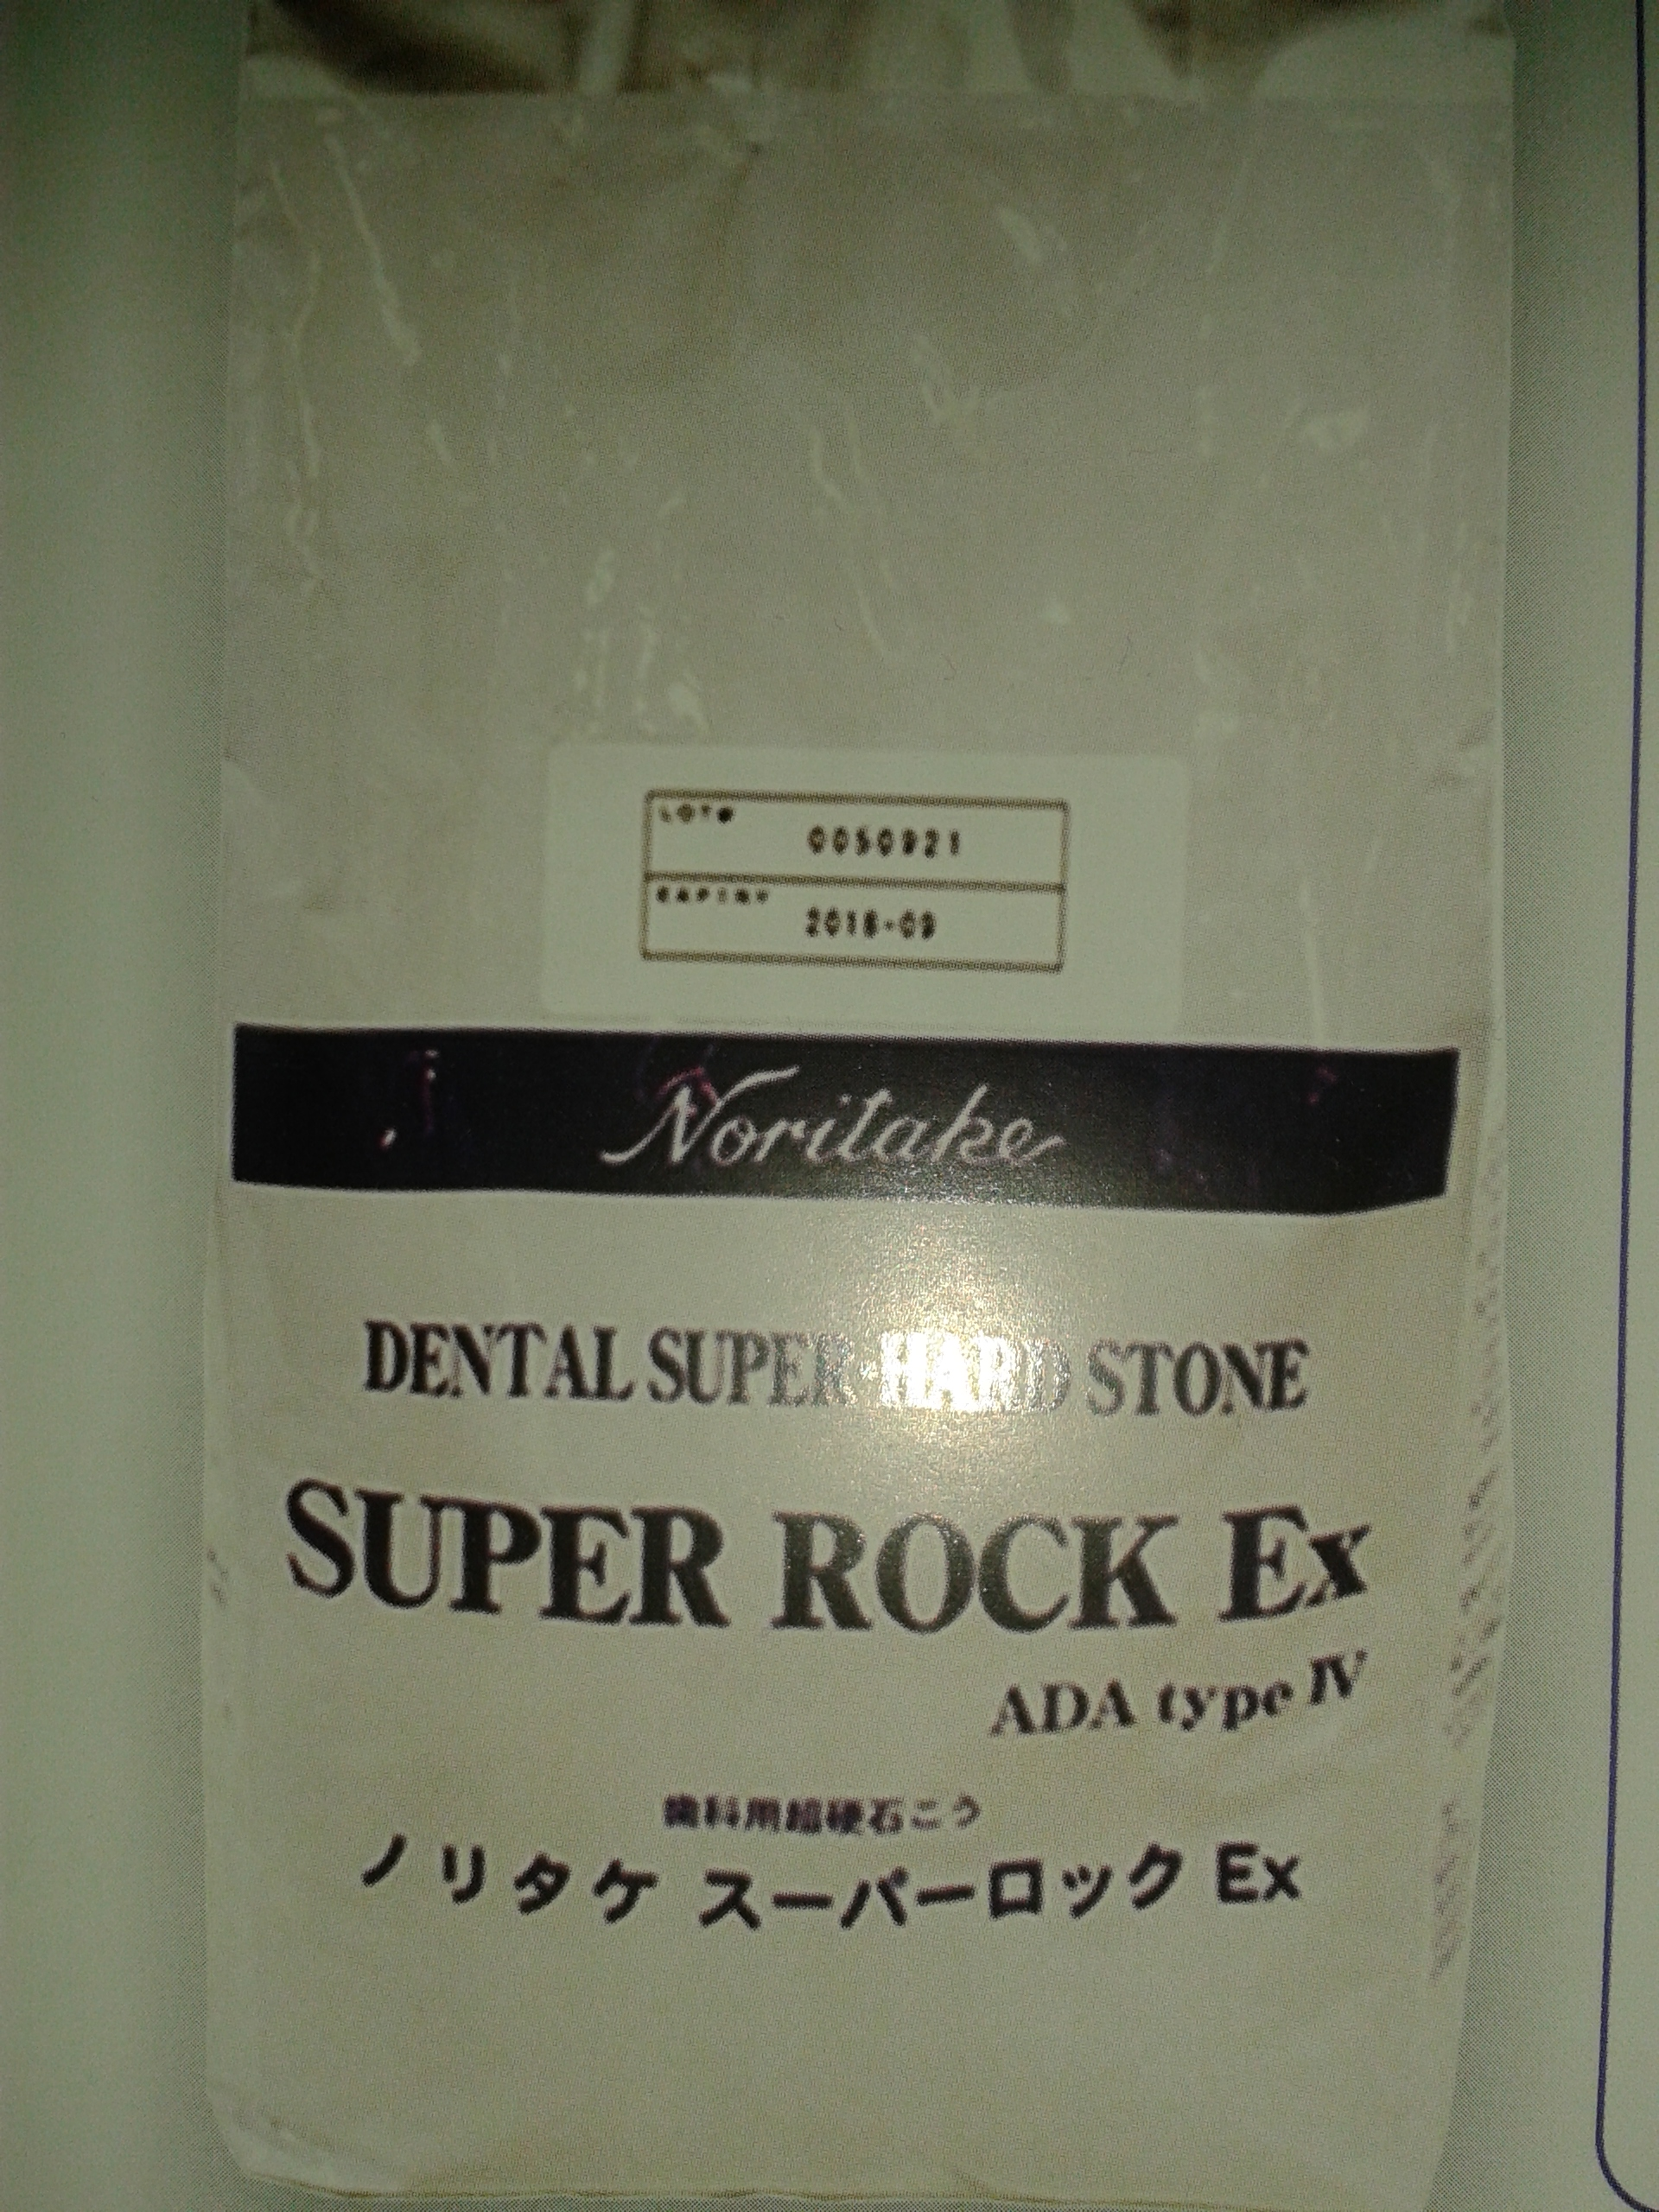 Super Rock EX тип IV - гипс 4 класса, 22,7кг